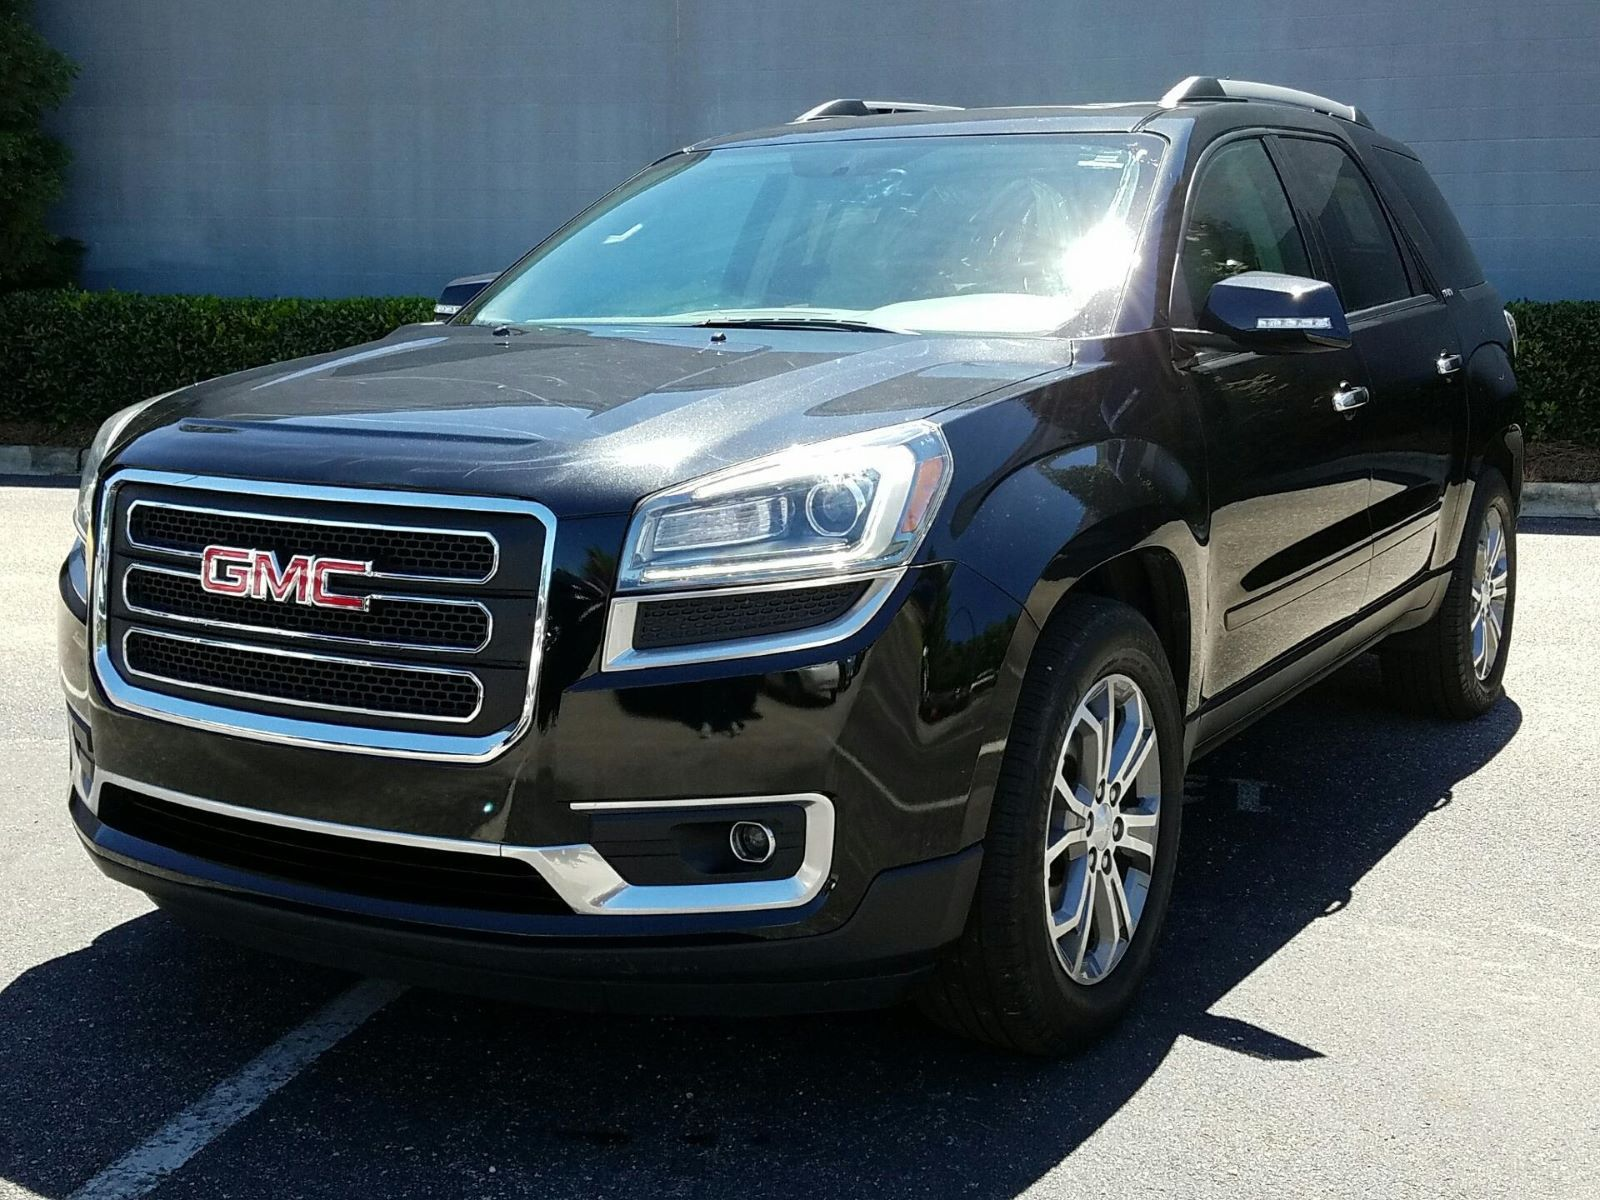 Used 2014 Gmc Acadia In Greenville South Carolina Carmax Gmc South Carolina Carmax